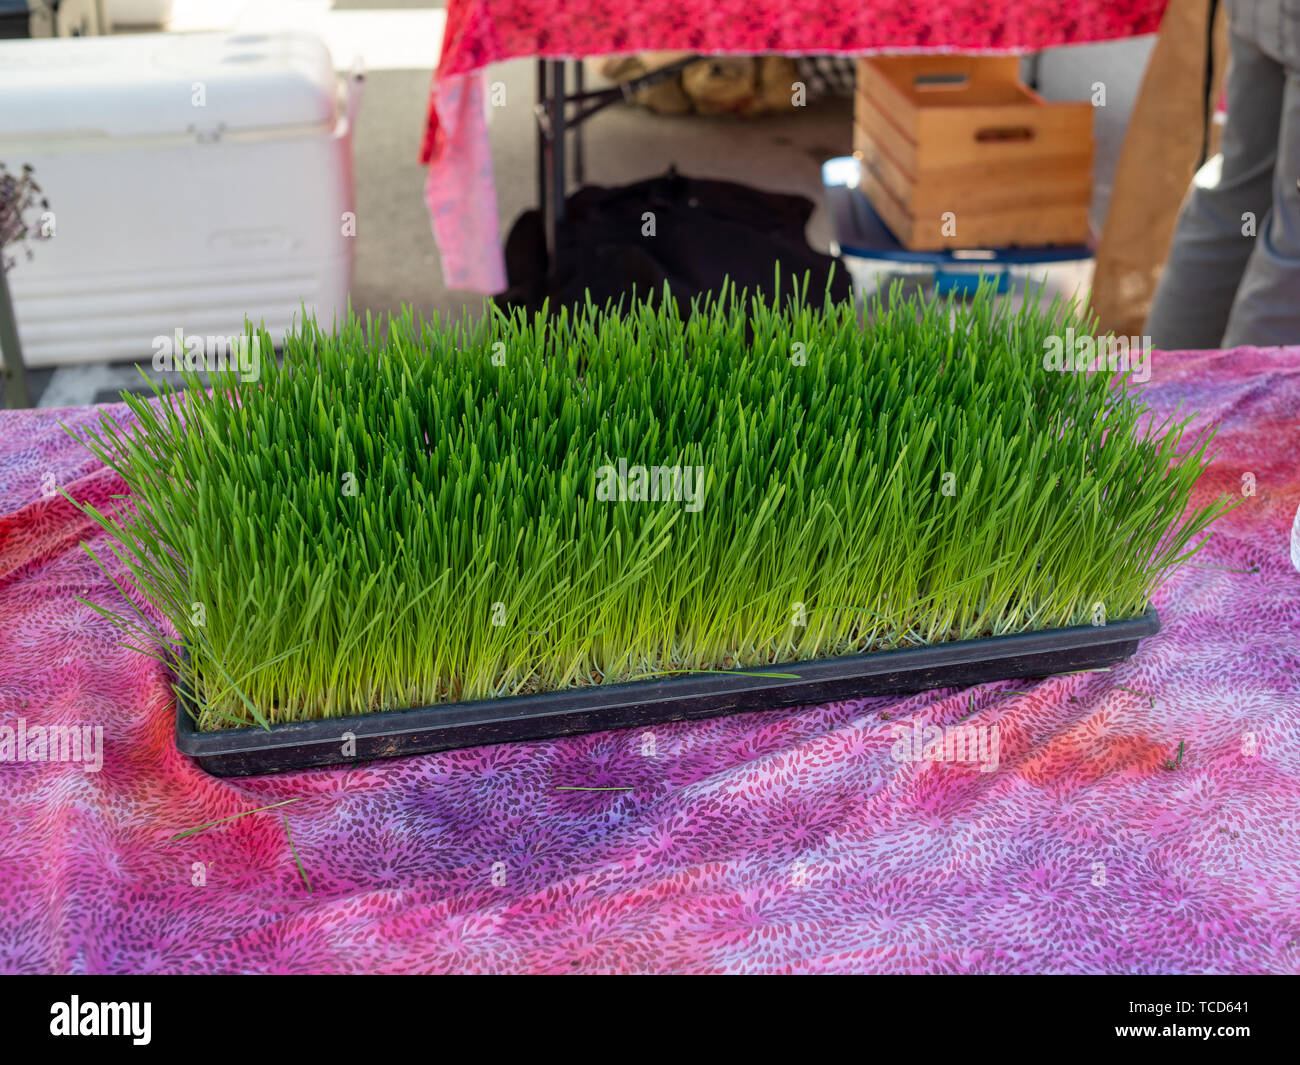 Fresh wheatgrass herbs on display for purchase at outdoor farmers market - Stock Image